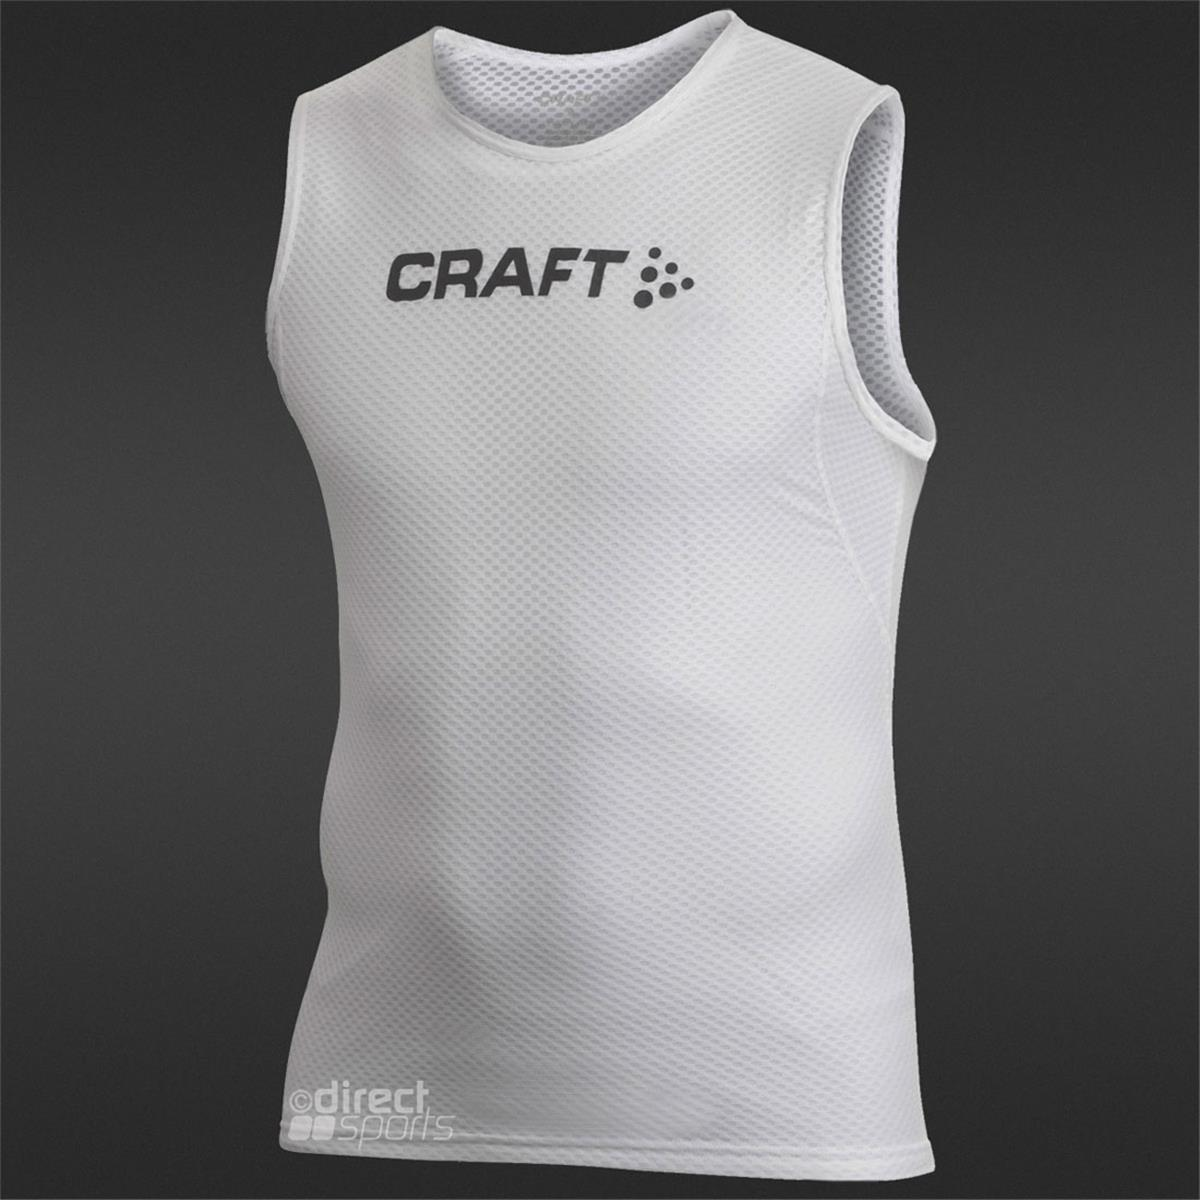 Craft cool mesh superlight sleeveless top mens logo for Craft cool mesh superlight headband